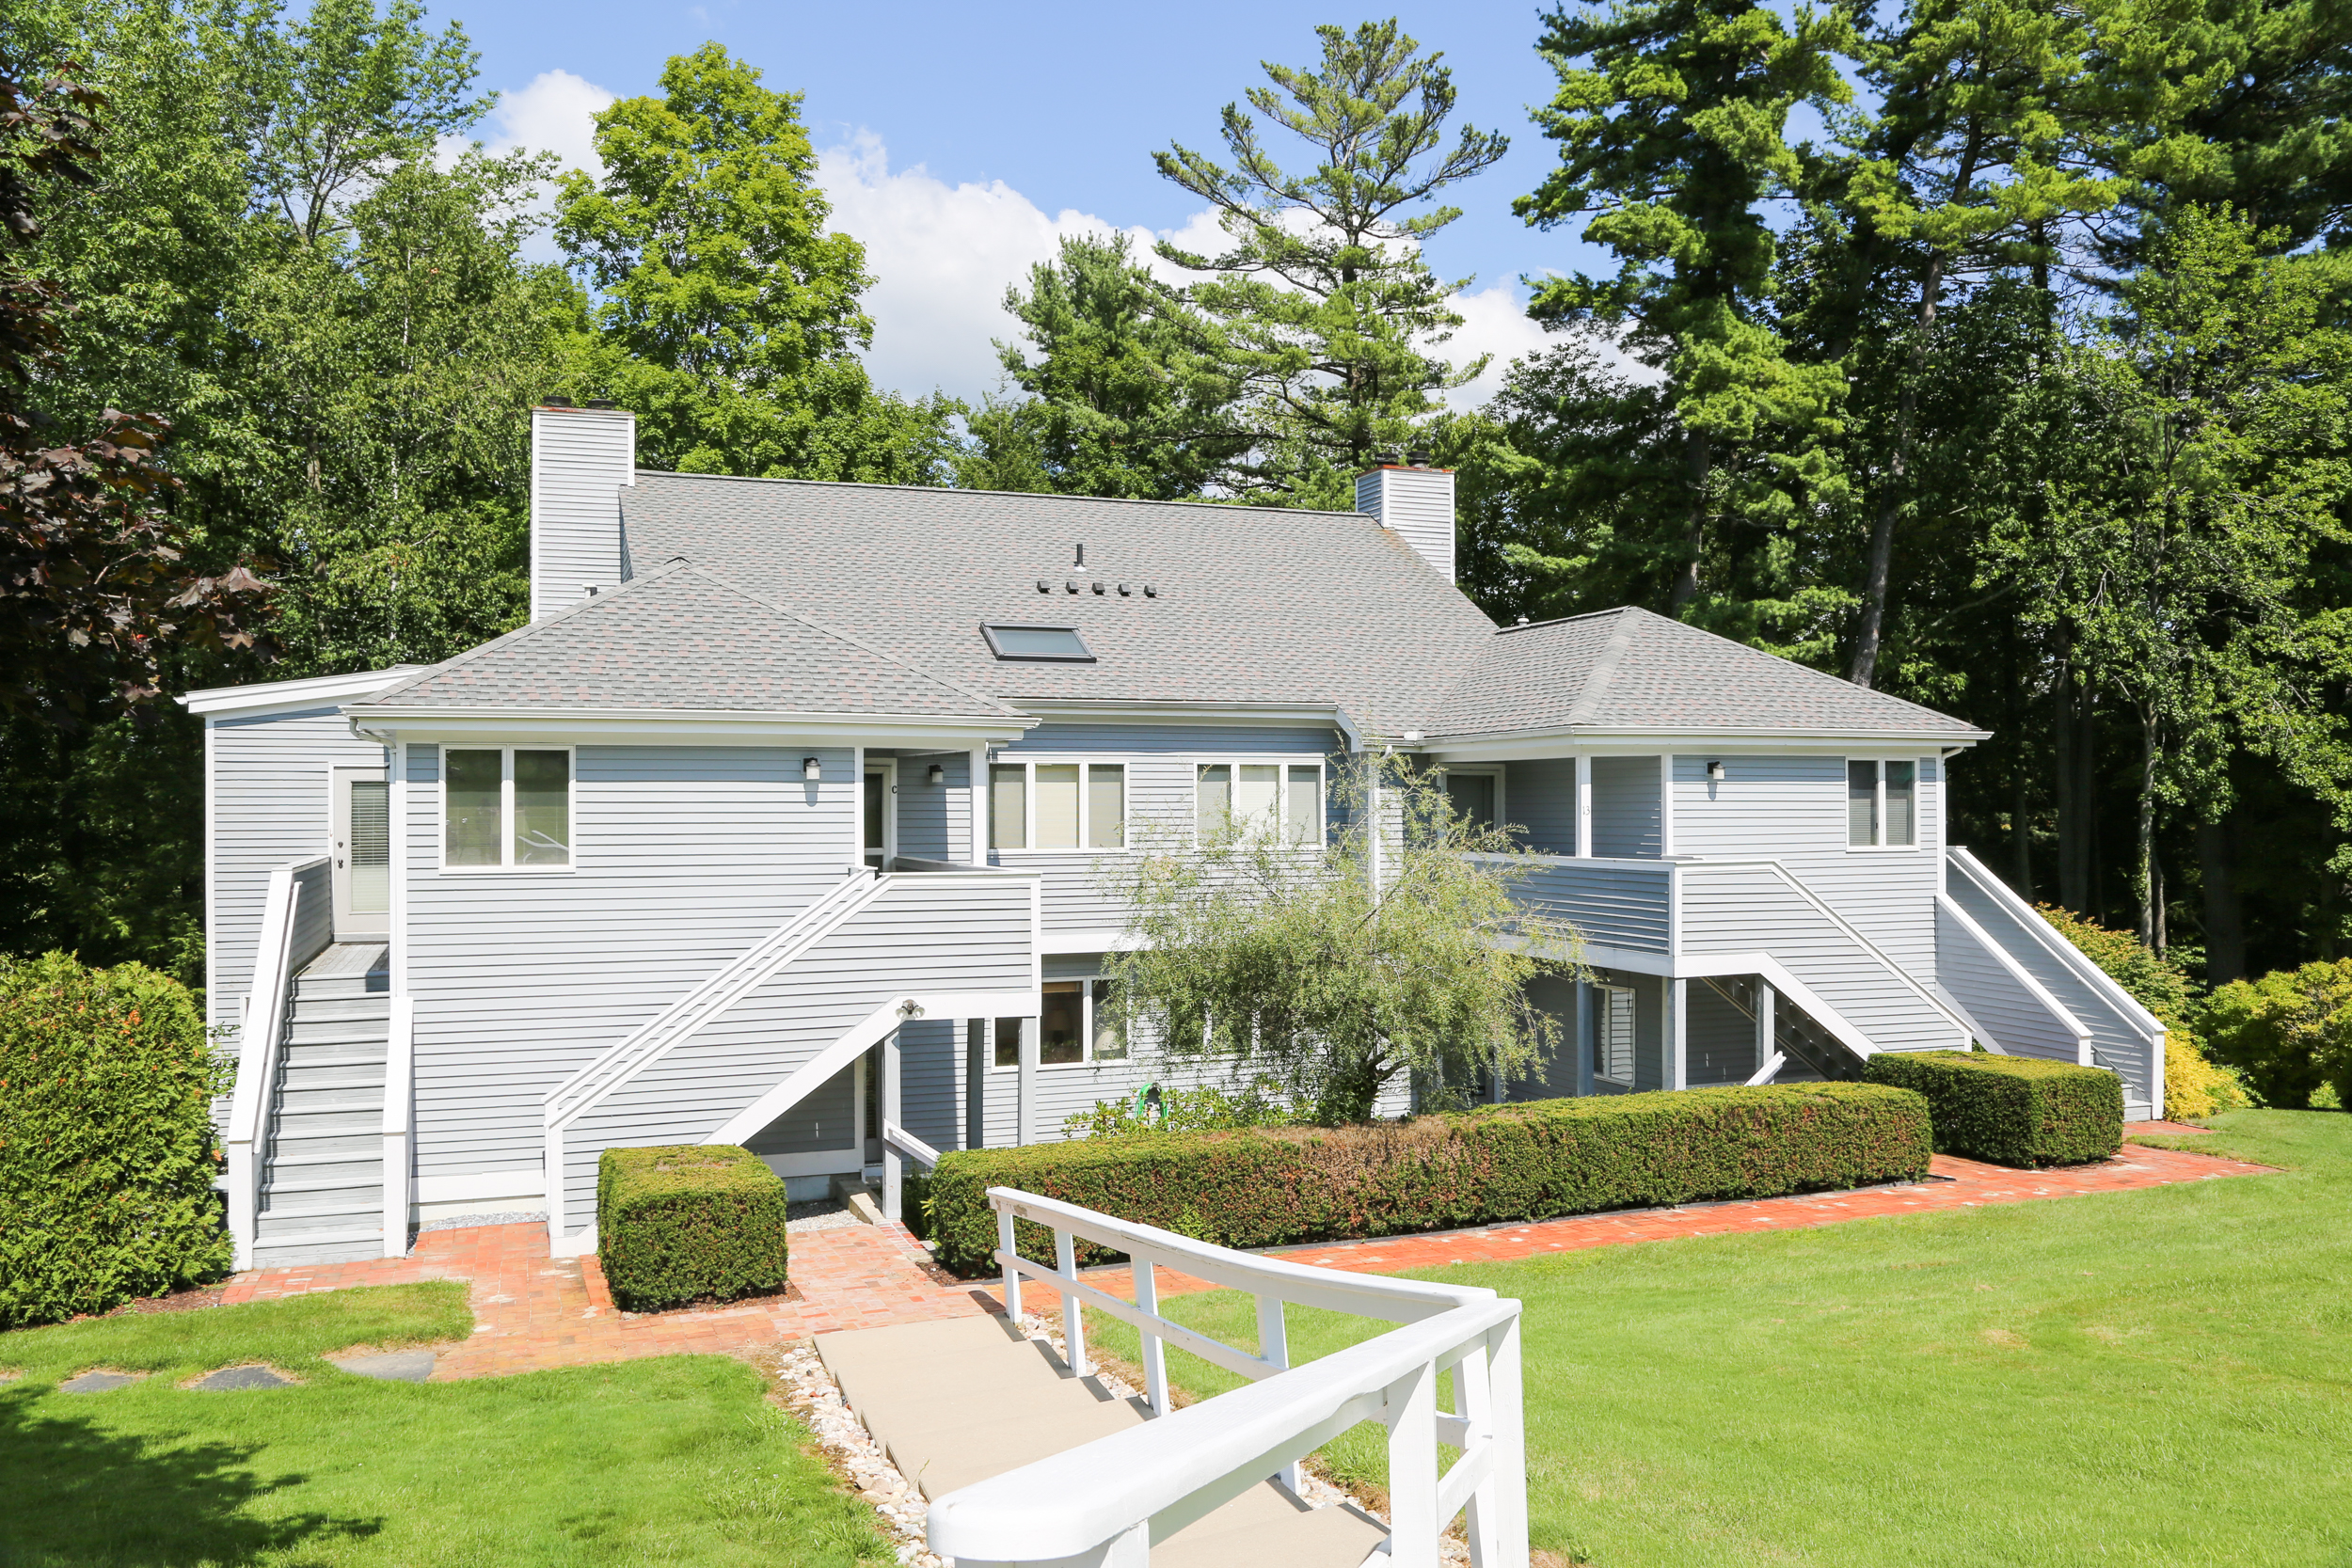 Condominio por un Venta en Turn-Key Berkshires Condo - Renovated to the Nines! 770 Summer St Lenox, Massachusetts, 01240 Estados Unidos